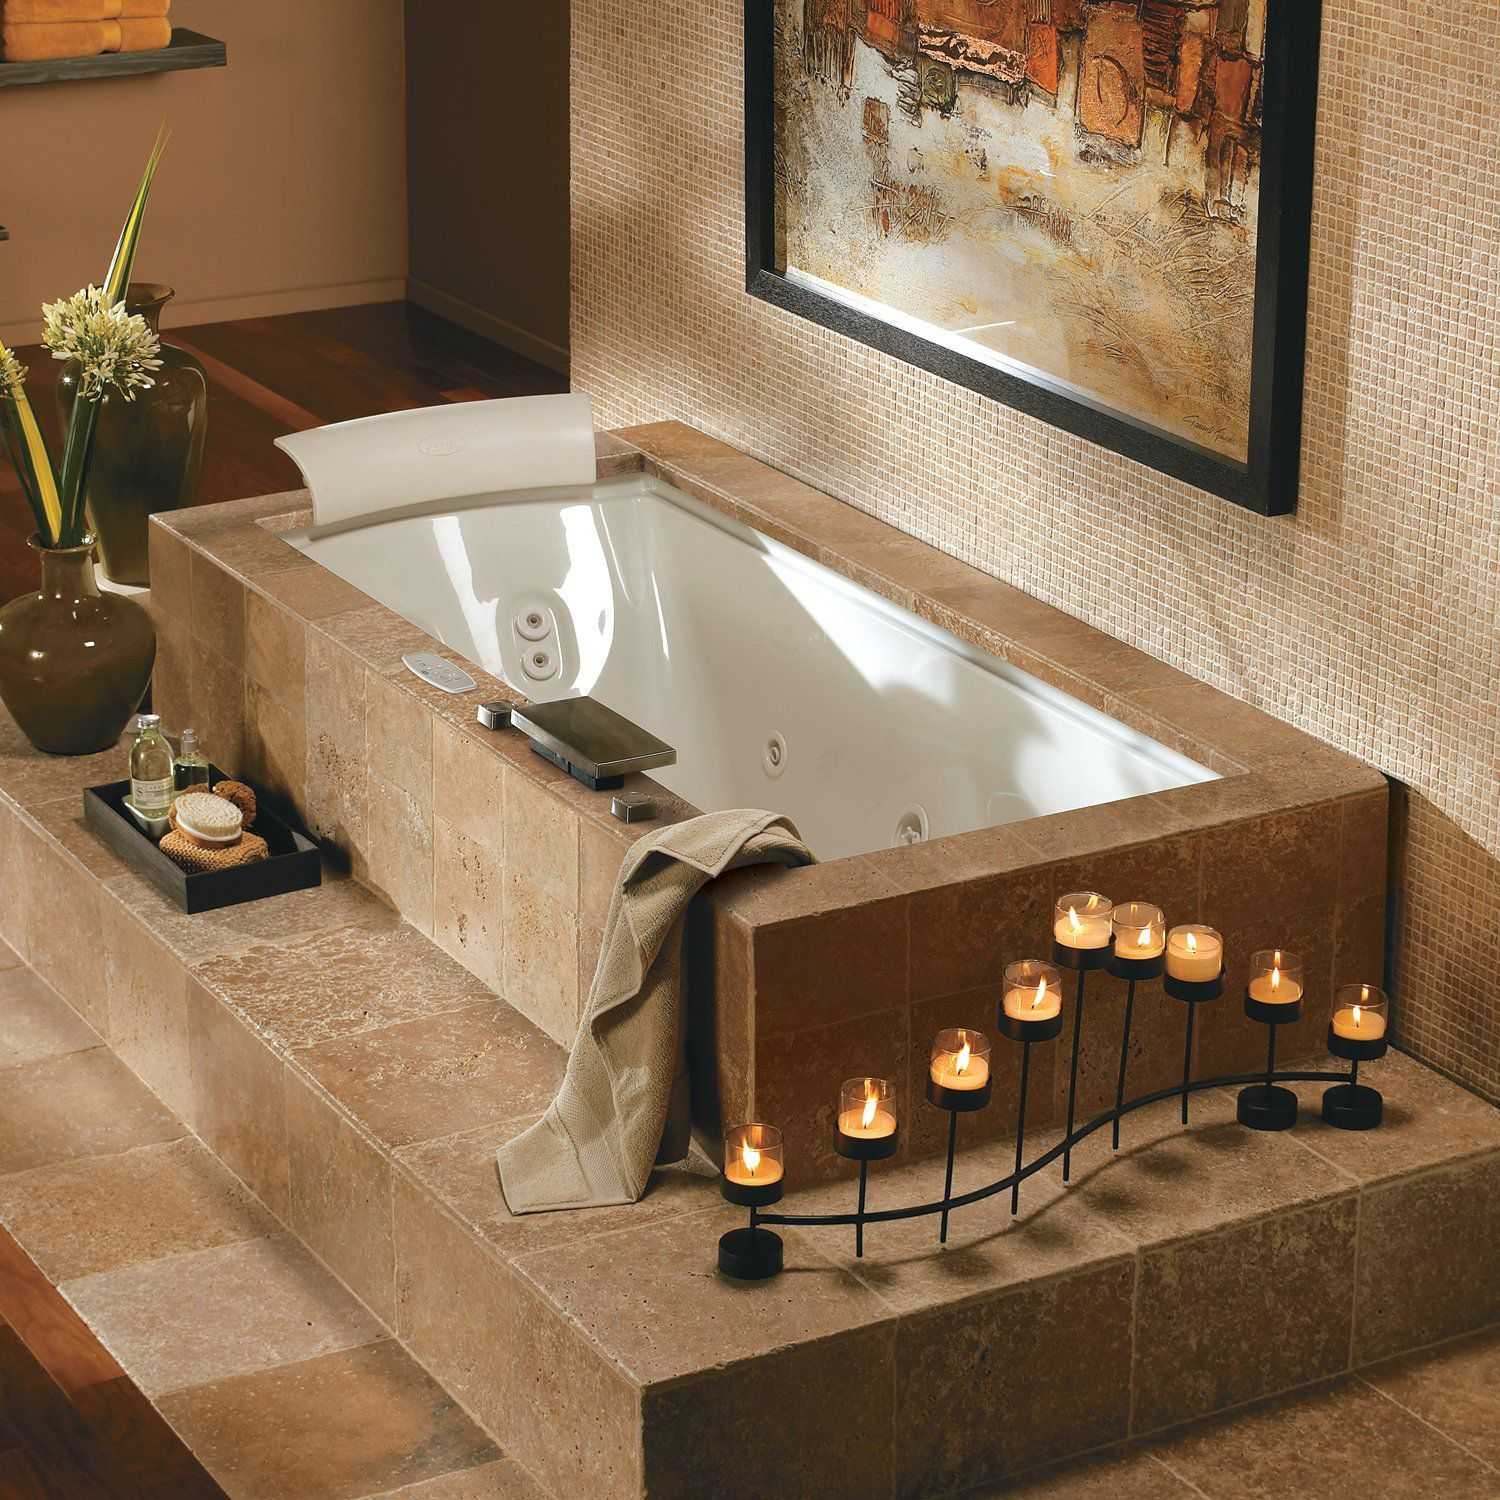 Glamorous Kohler Archer Tub Design for Modern Bathroom Decoration ...